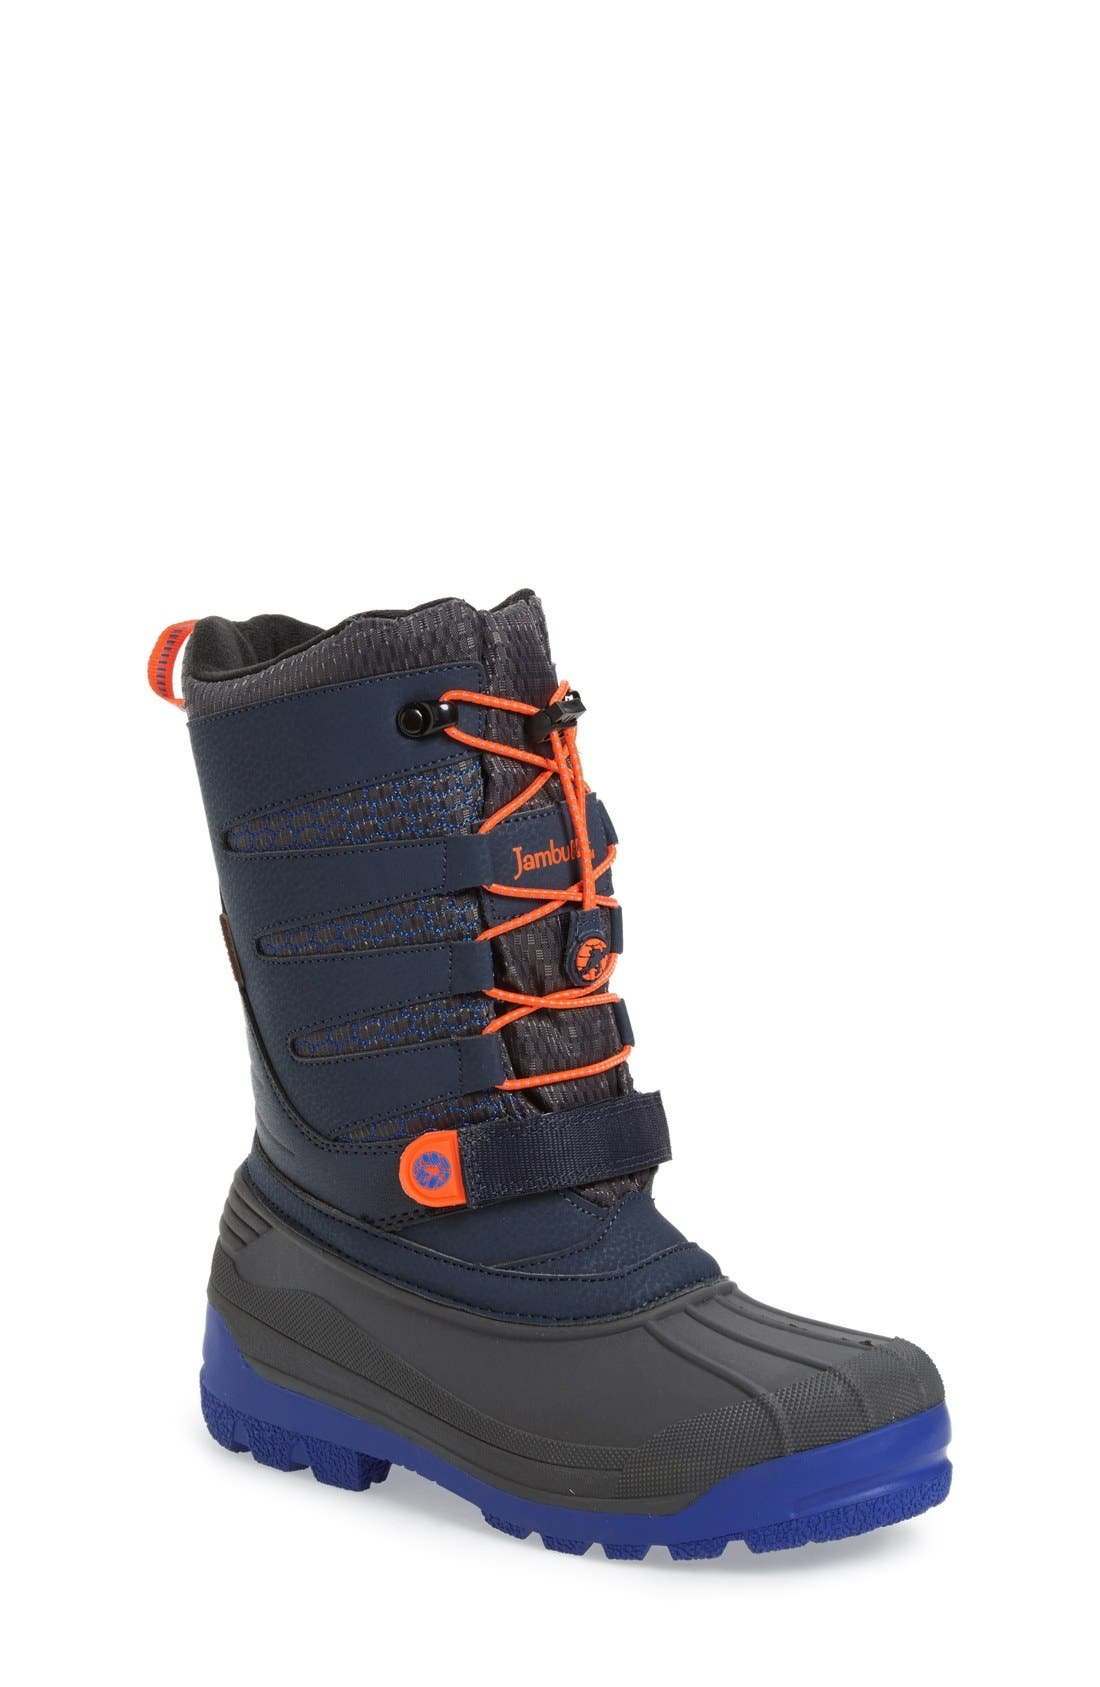 'Venom' Waterproof Insulated Snow Boot,                             Main thumbnail 1, color,                             Navy/ Orange